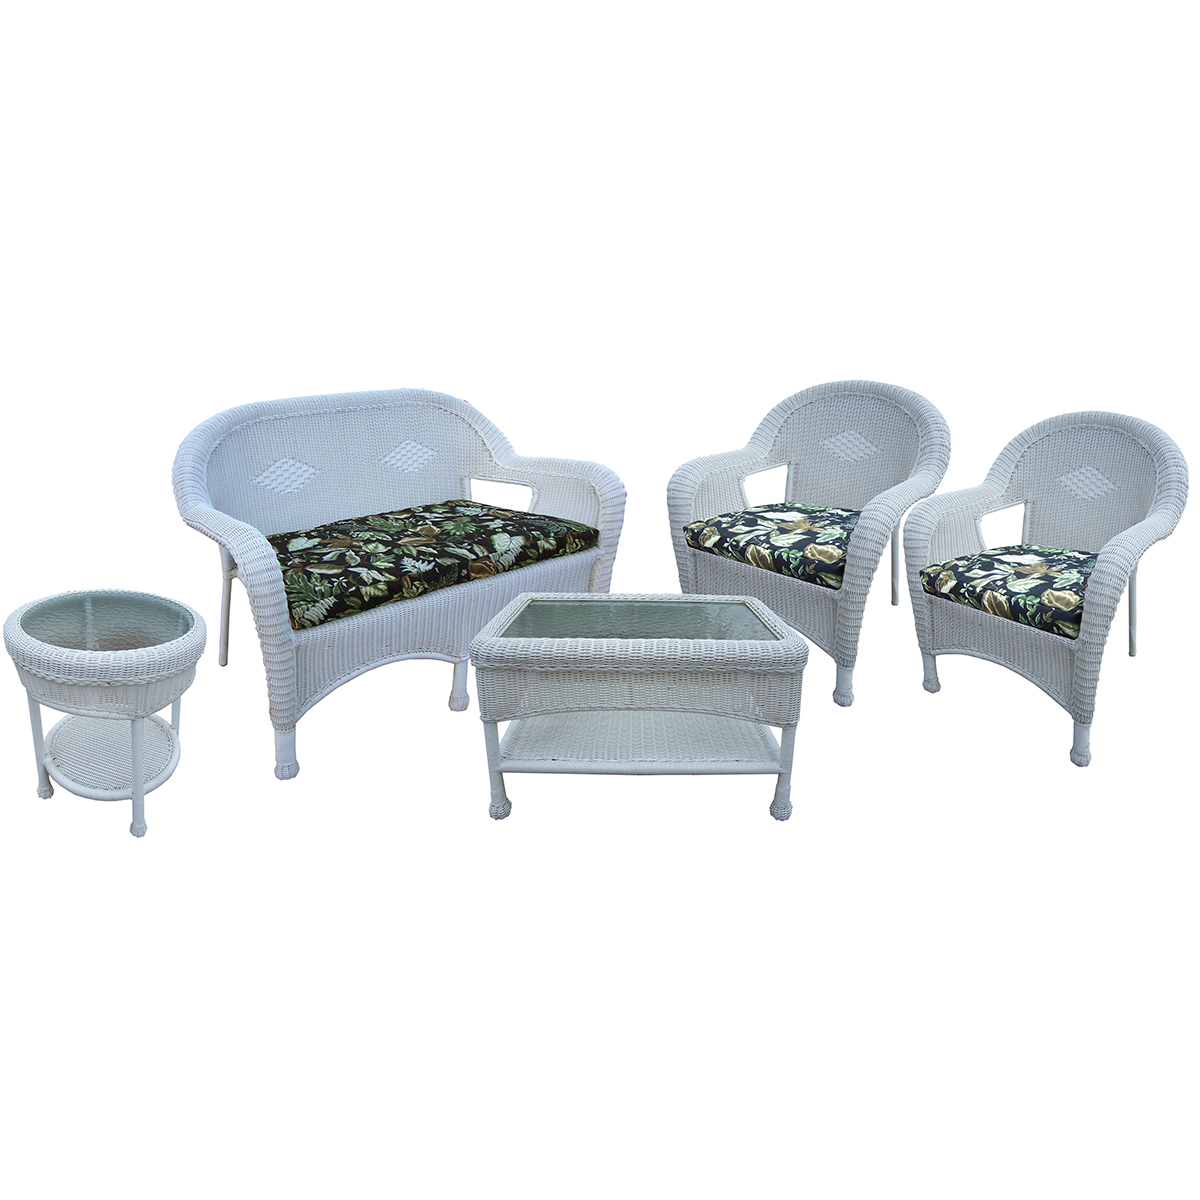 Oakland Living Resin Wicker 5 Pc. Seating Set With